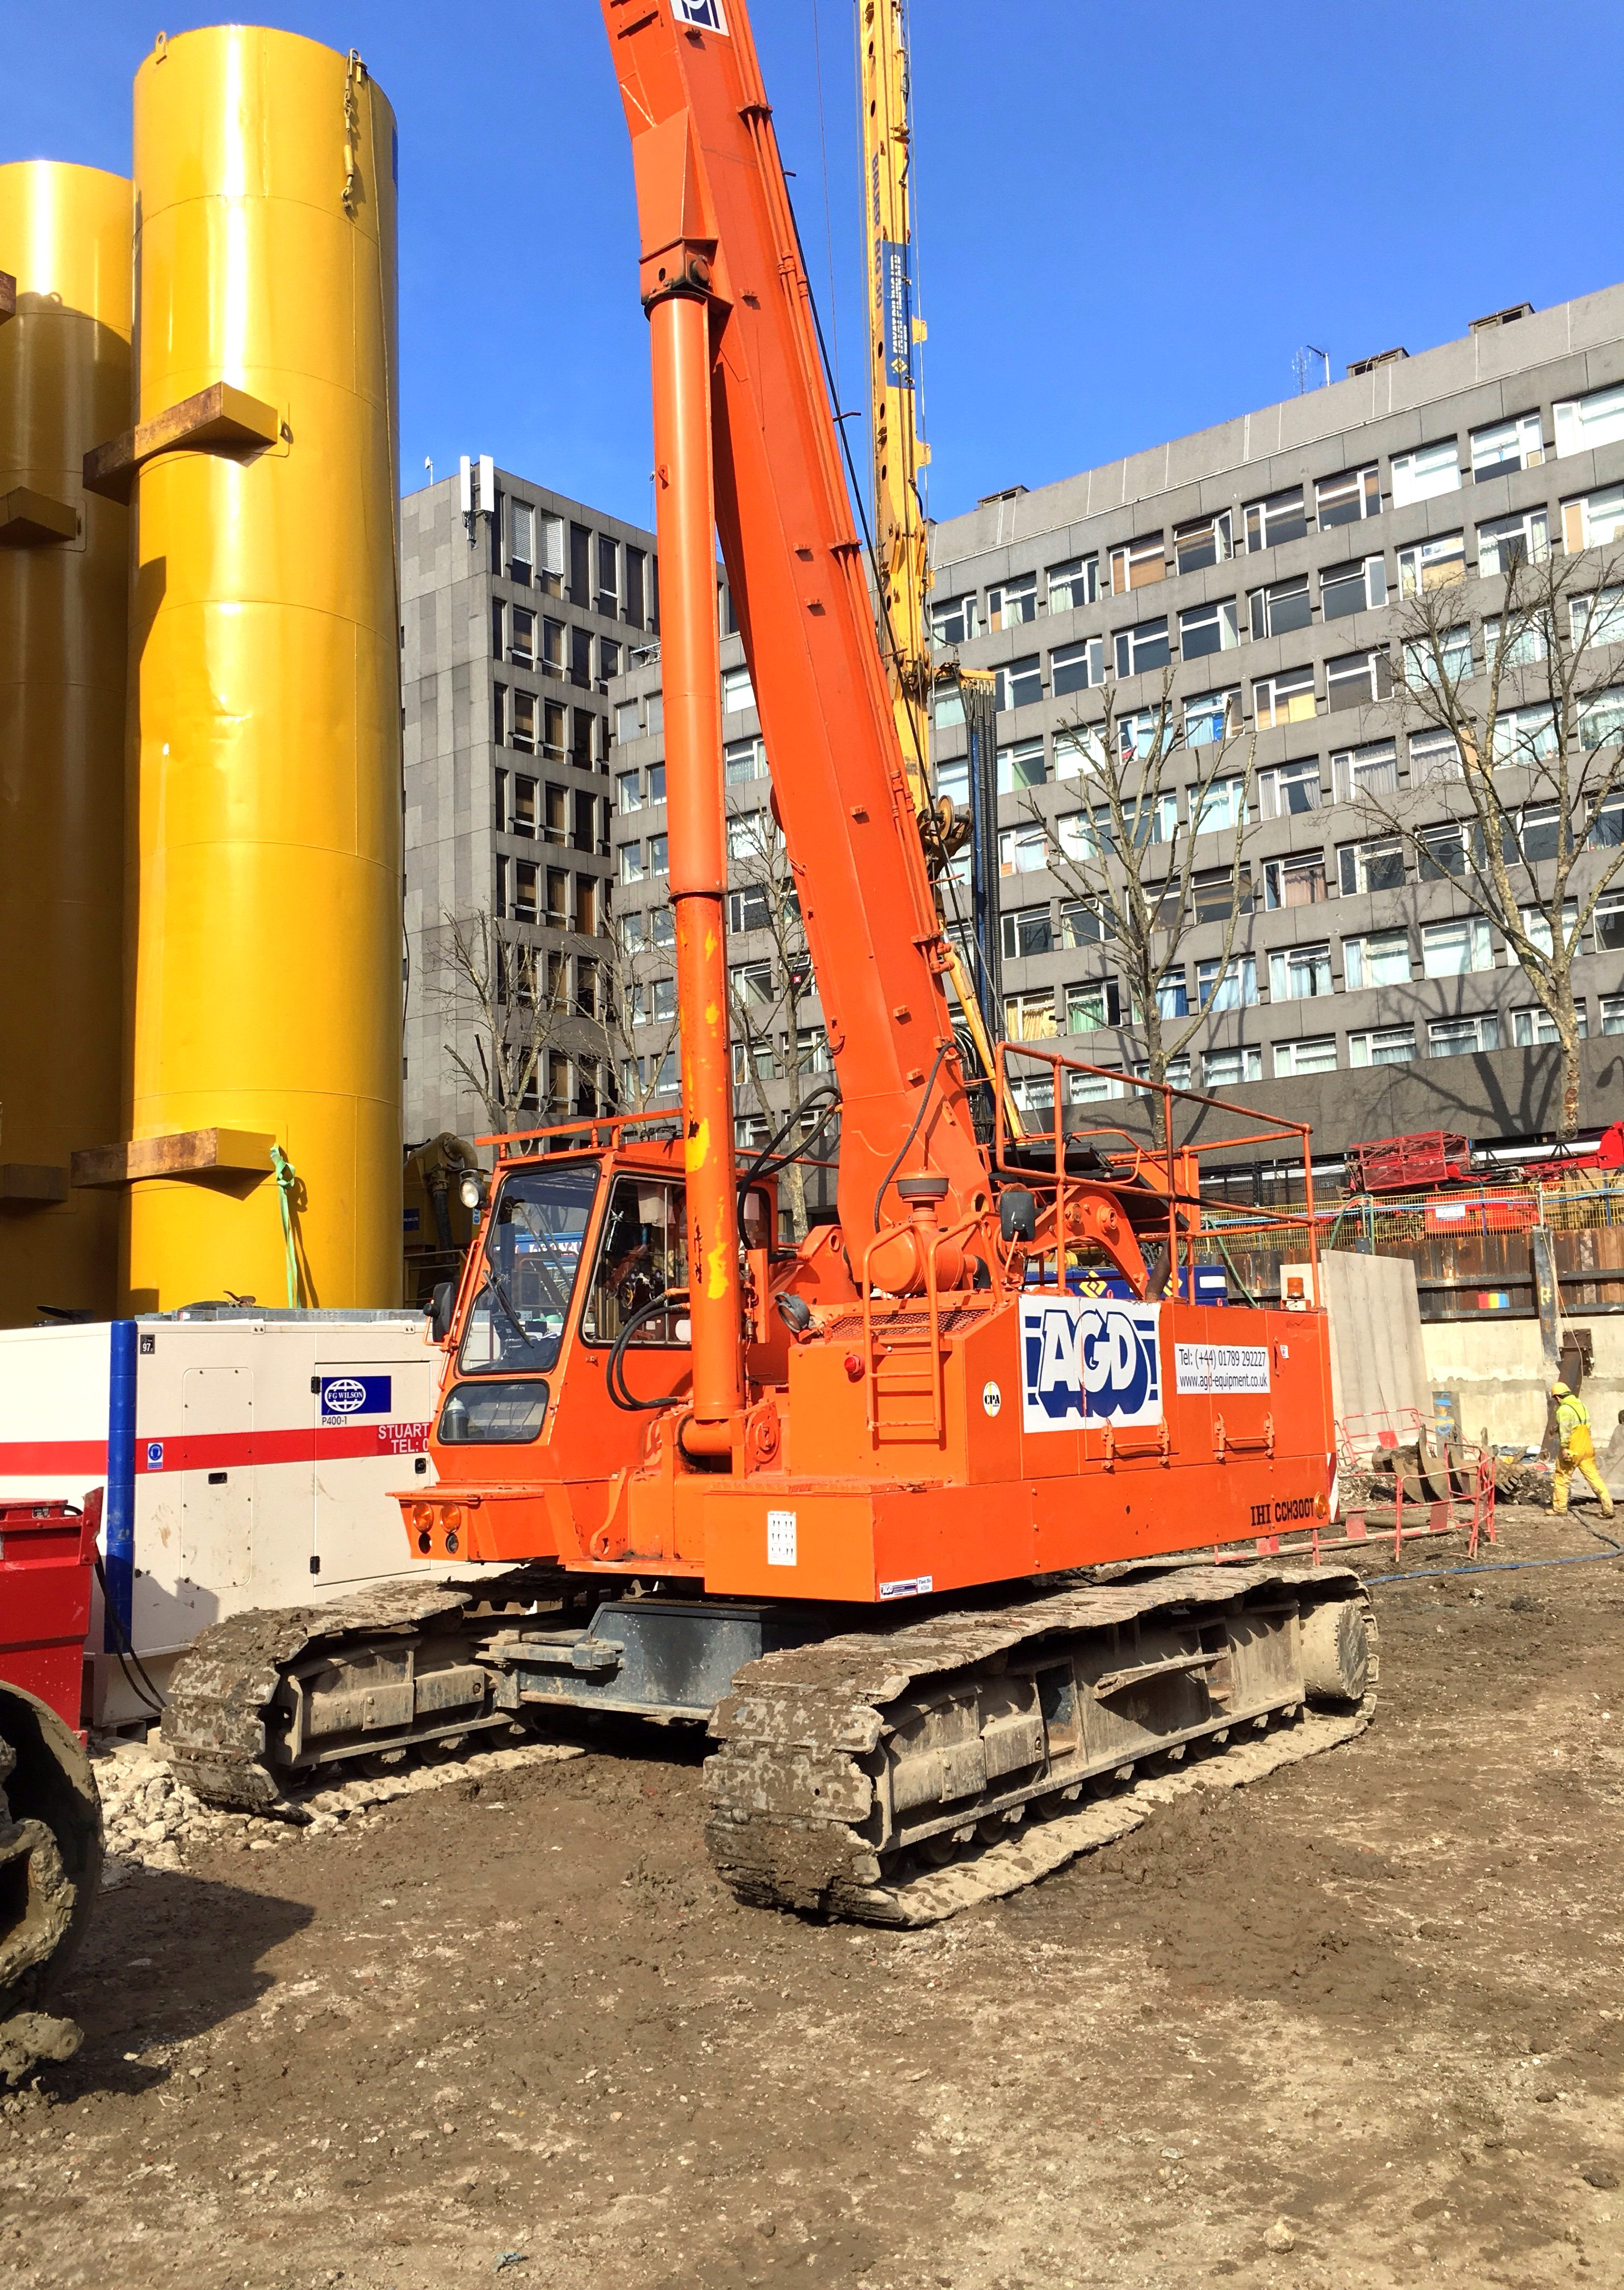 Used IHI CCH300T telescopic crawler crane for sale